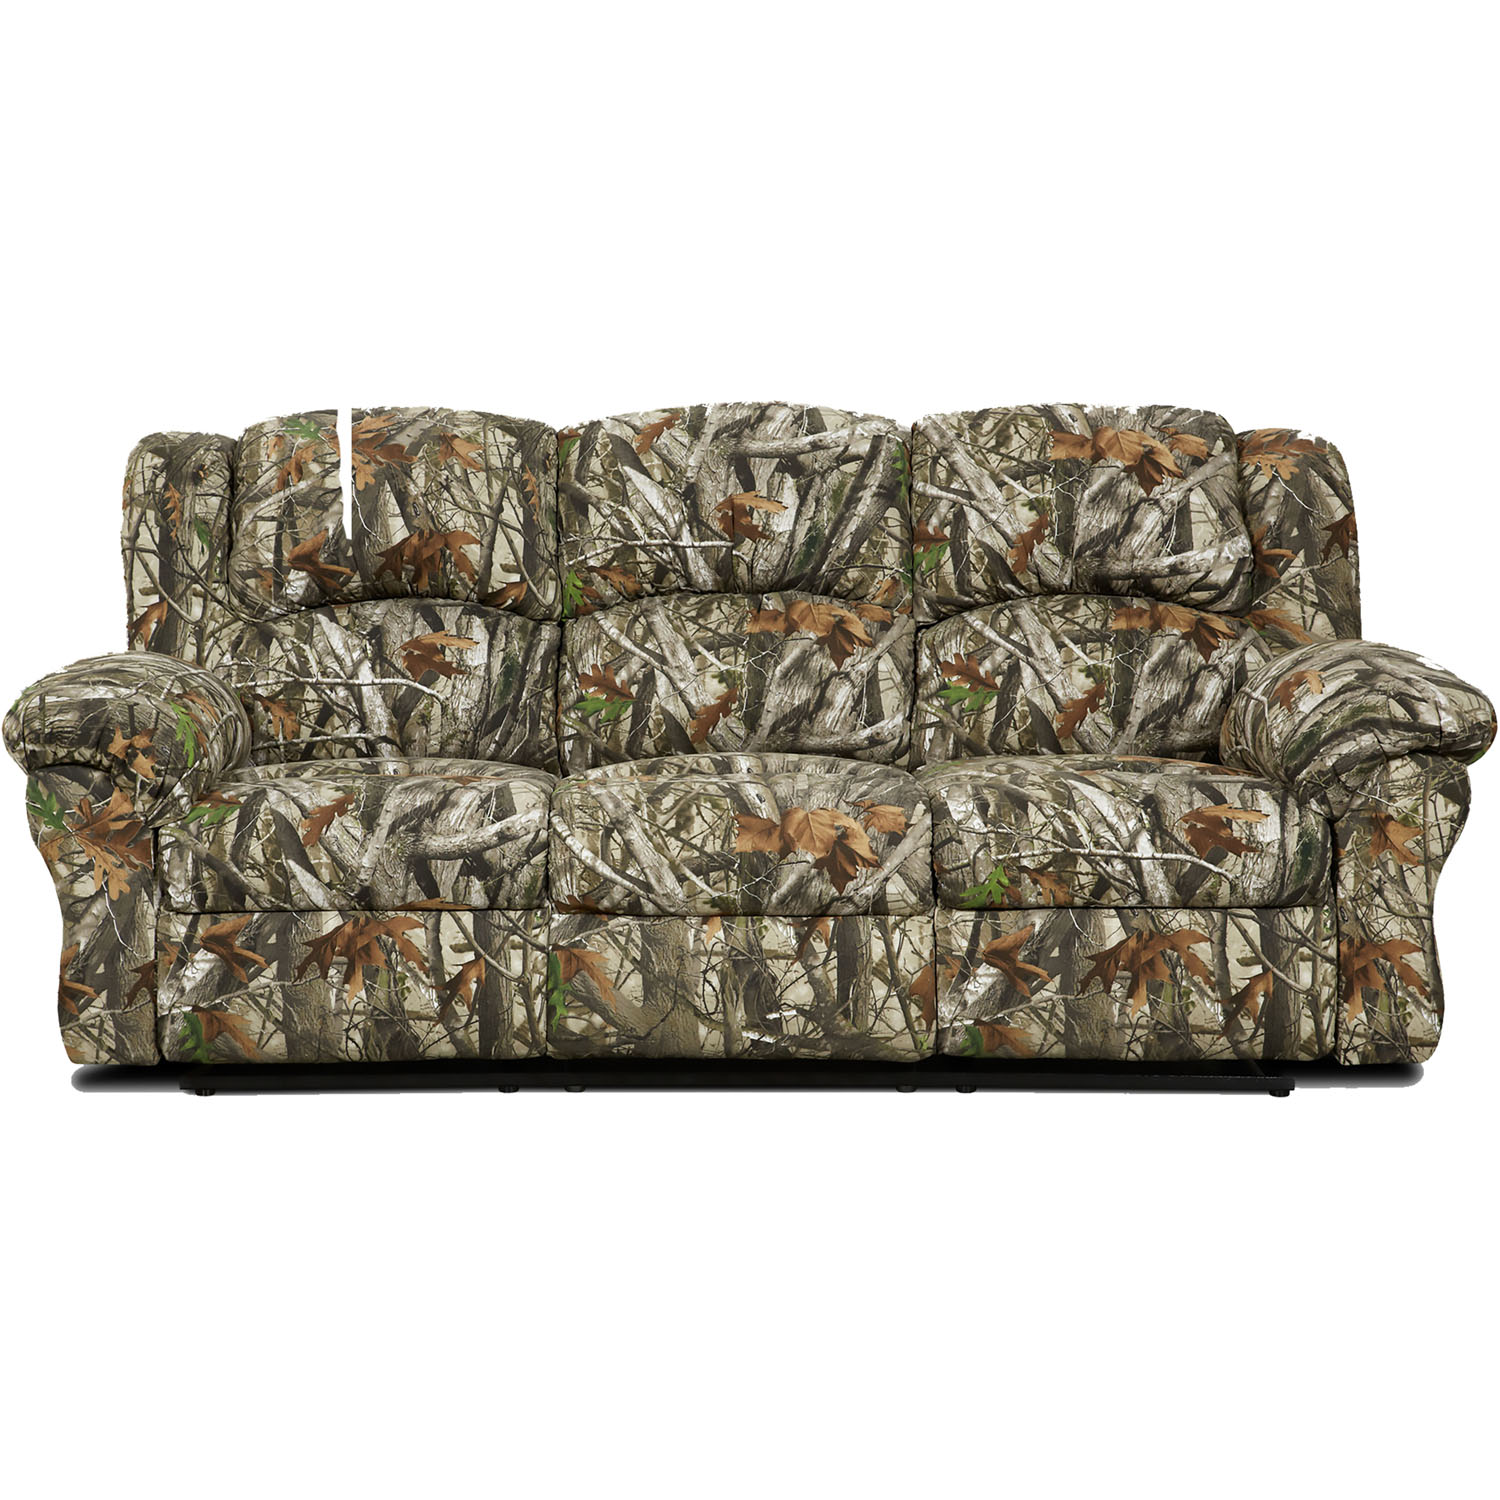 camo recliner chair circle lounge sofa second life marketplace or couch and ottoman set - thesofa